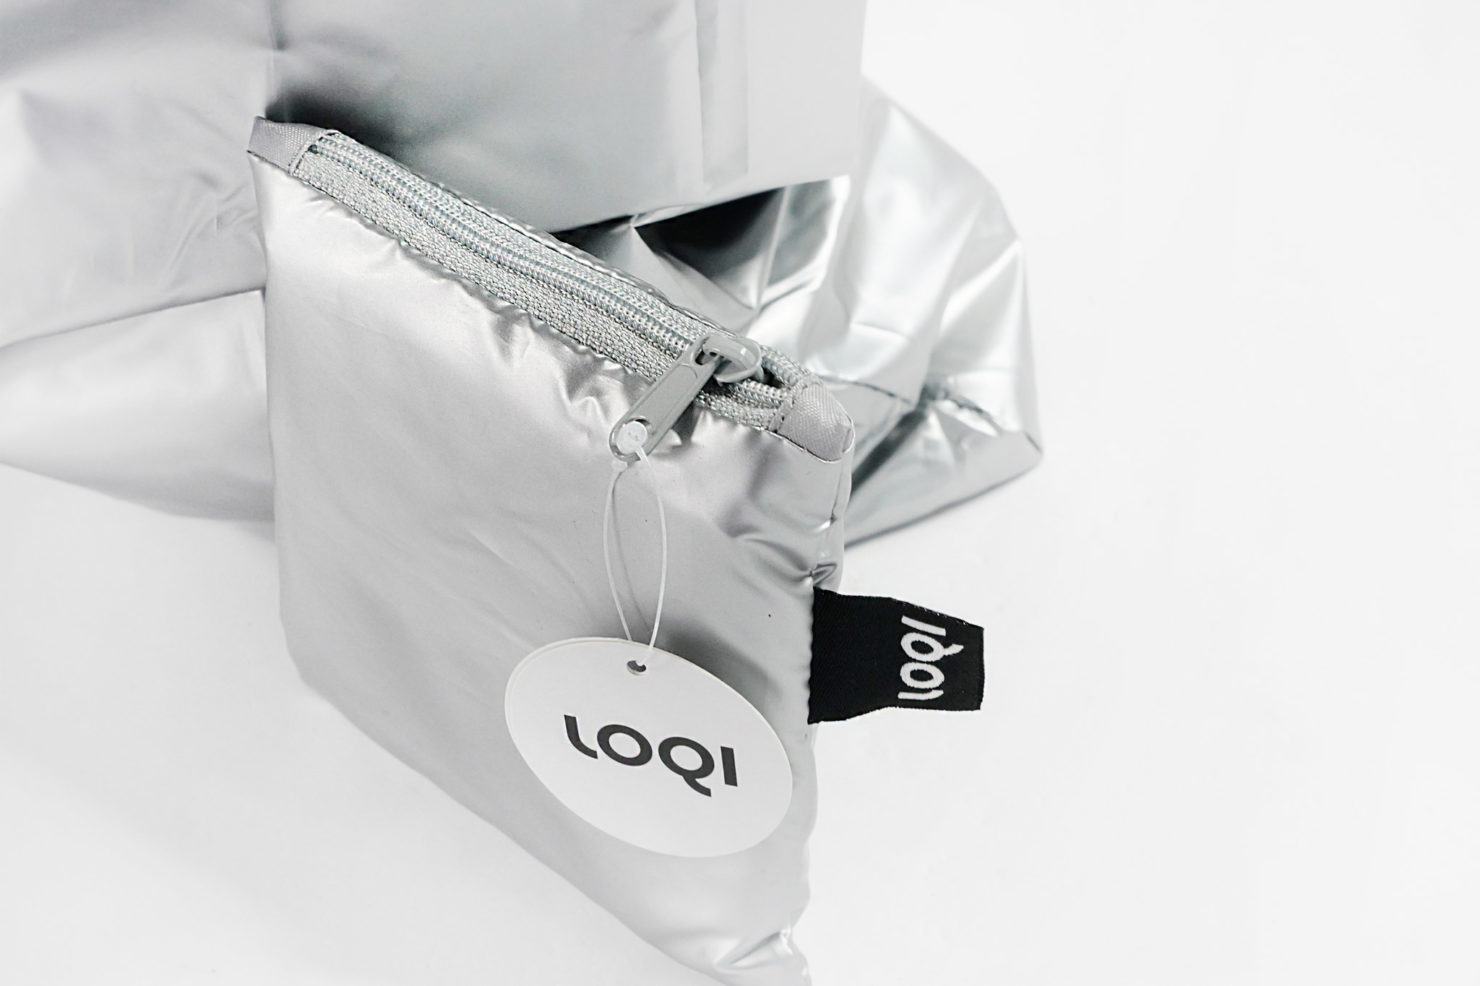 METALLIC MATT SILVER BAG - LOQI